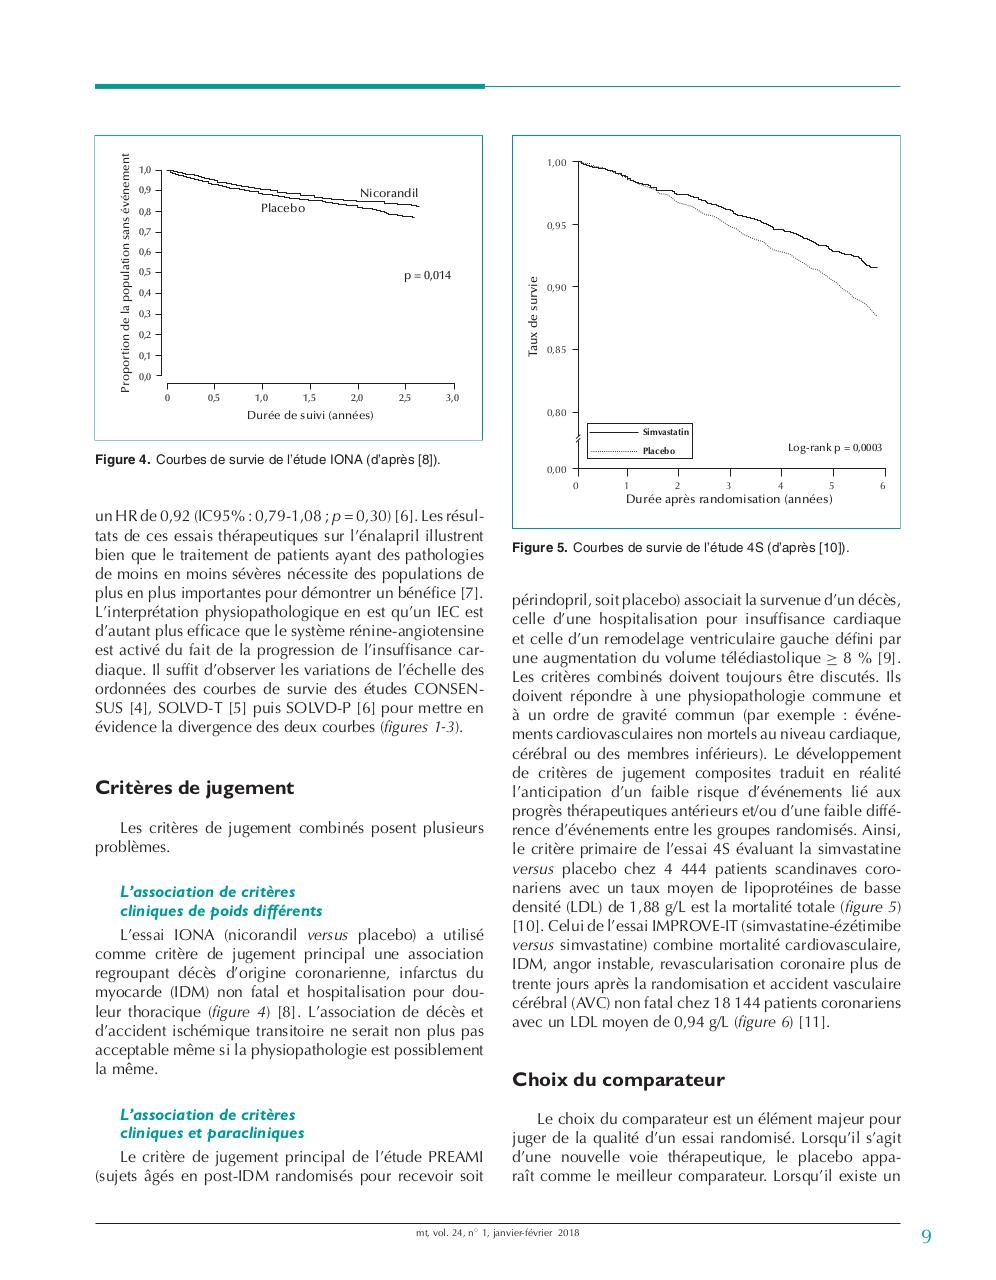 met-311349-approche_critique_des_essais_therapeutiques_randomises_evoluer_vers_une_medecine_personnalisee-pvennezat-WwGJZn8AAQEAAAfeqj0AAAAD-u.pdf - page 3/11